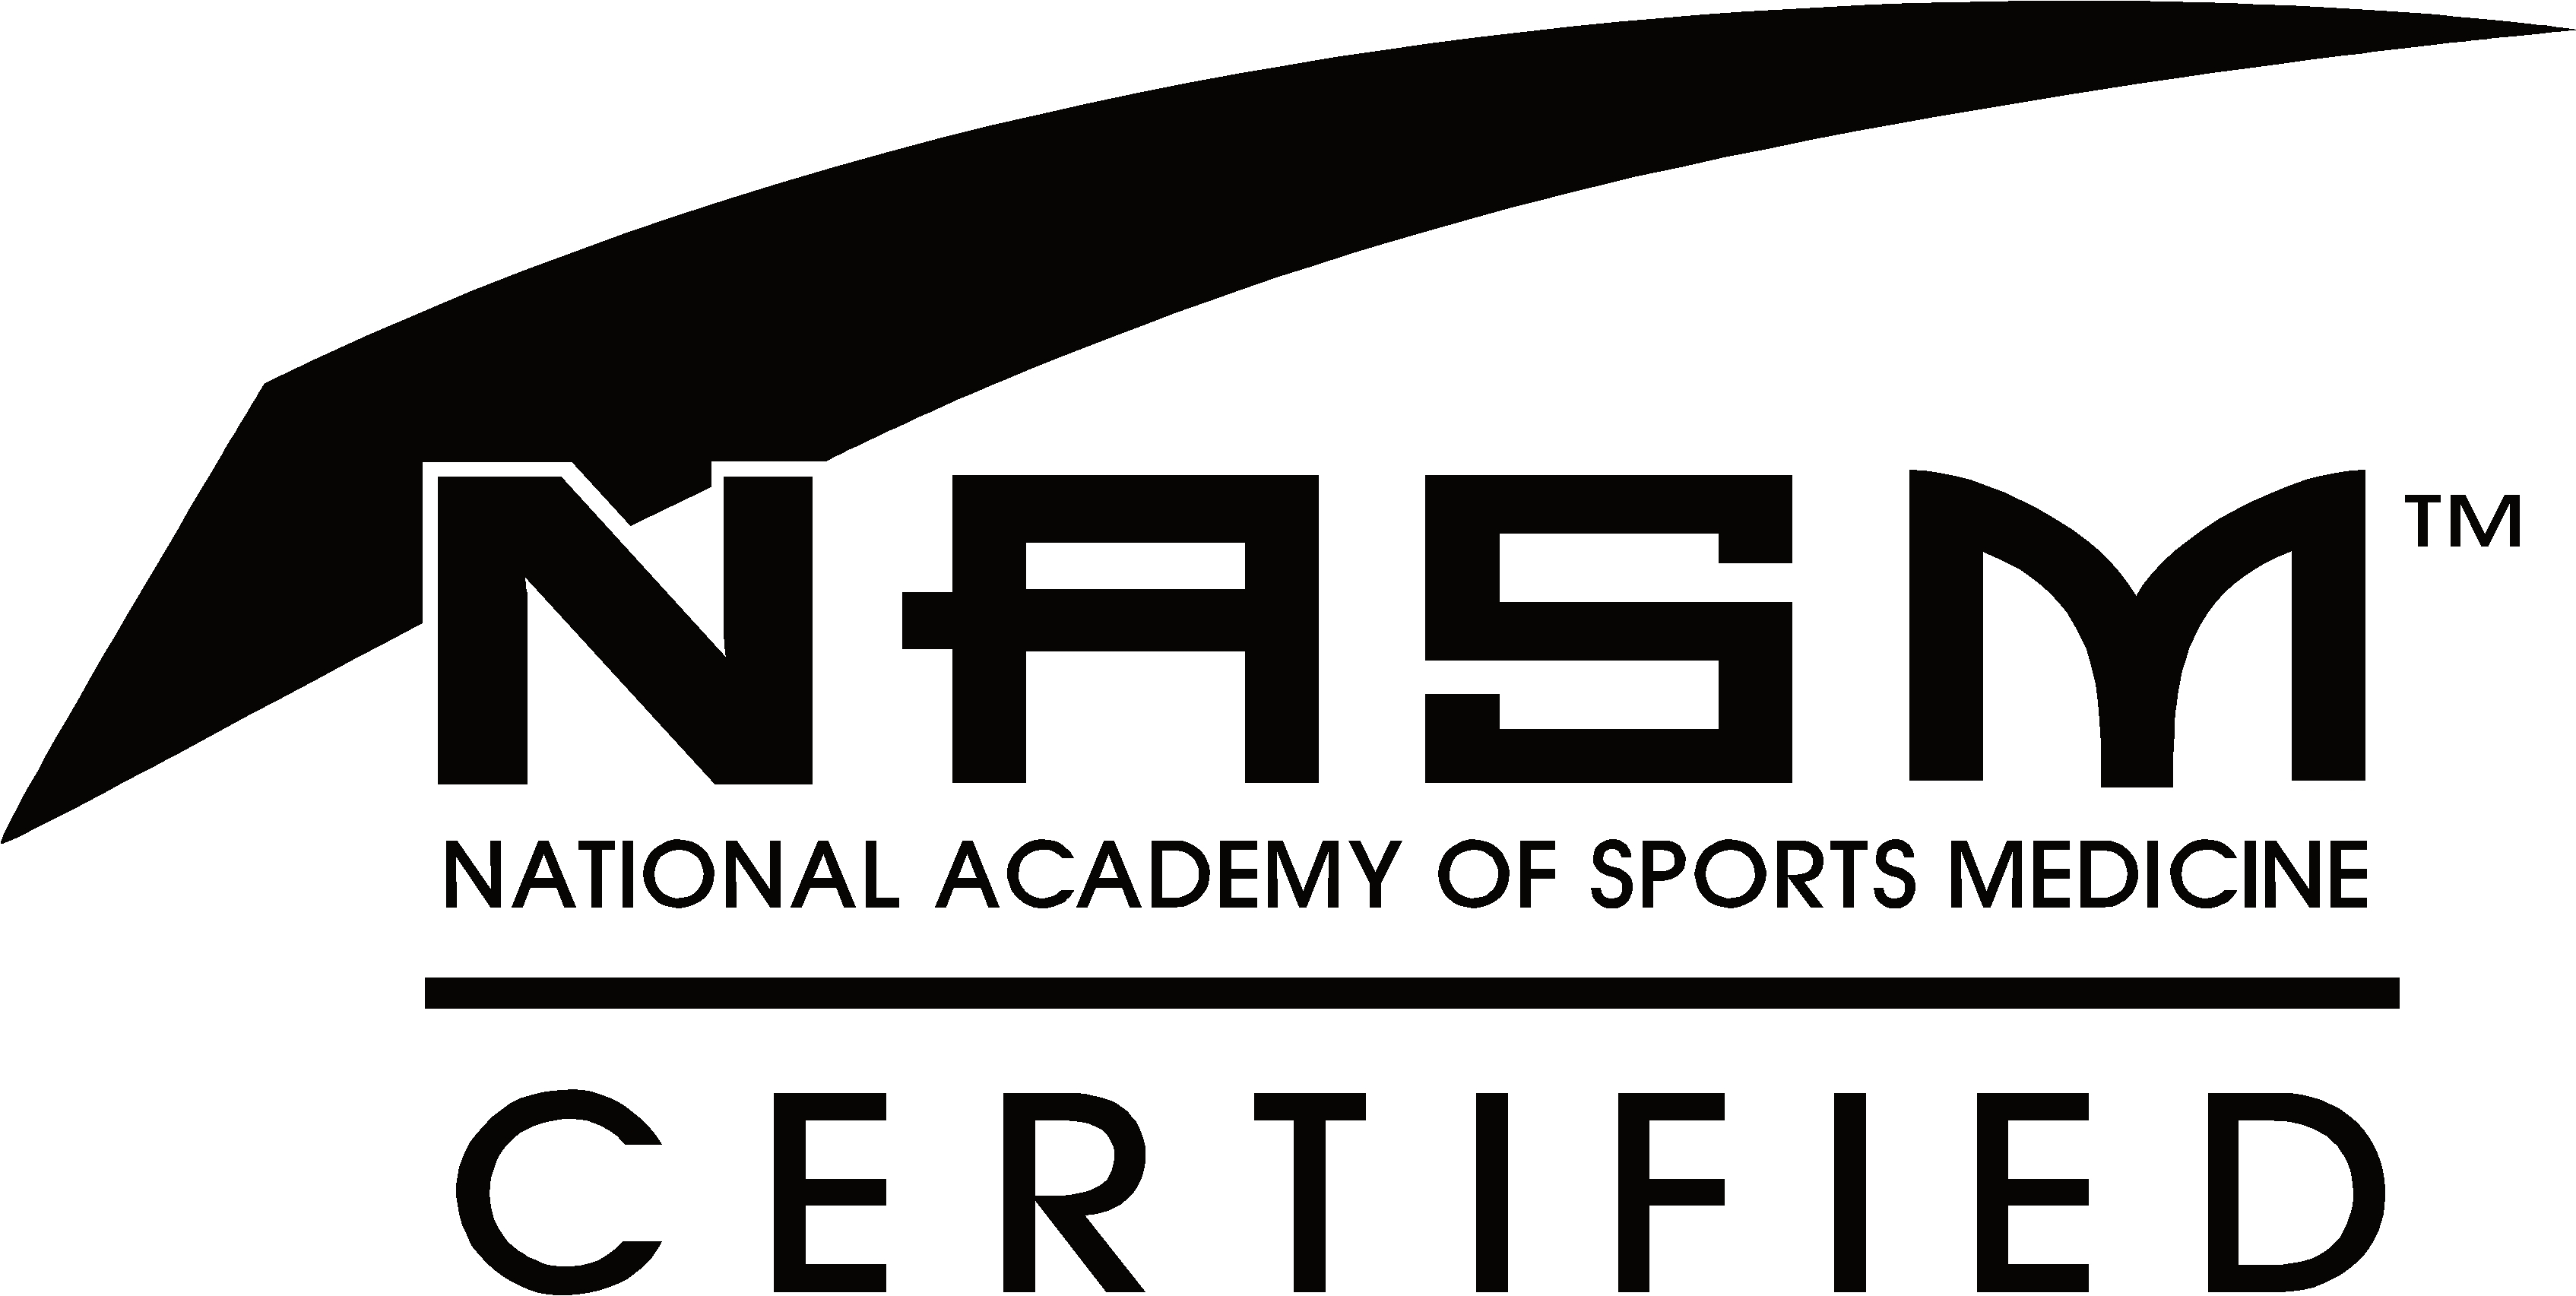 Elegant images of nasm personal training certification business gym wilmington from nasm personal training certification image source topsathletics xflitez Gallery